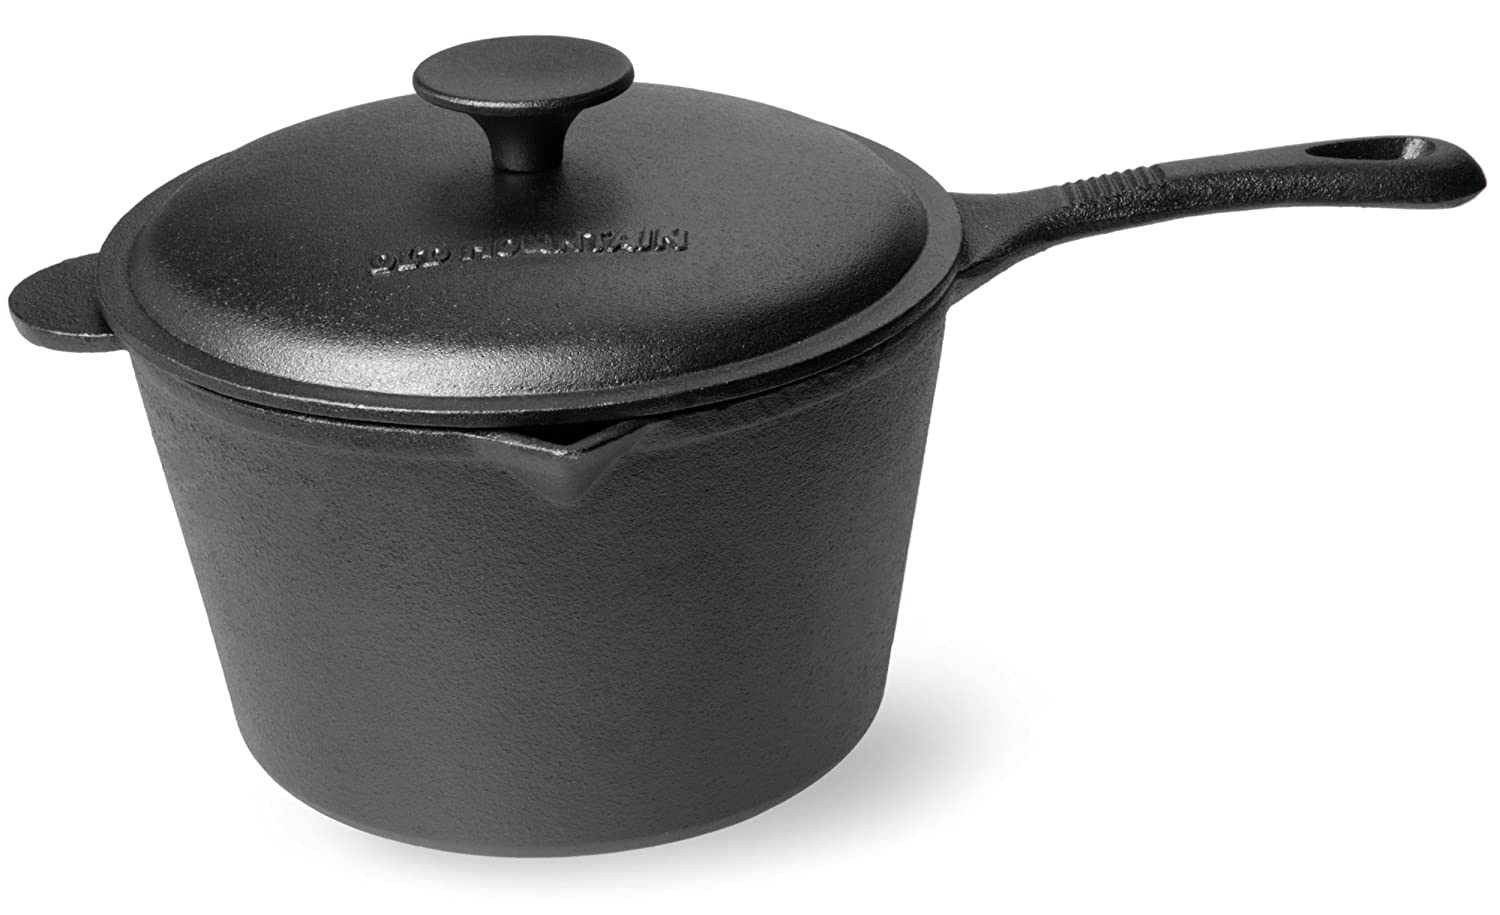 Old Mountain Pre Seasoned 3 Quart Sauce Pan with Lid